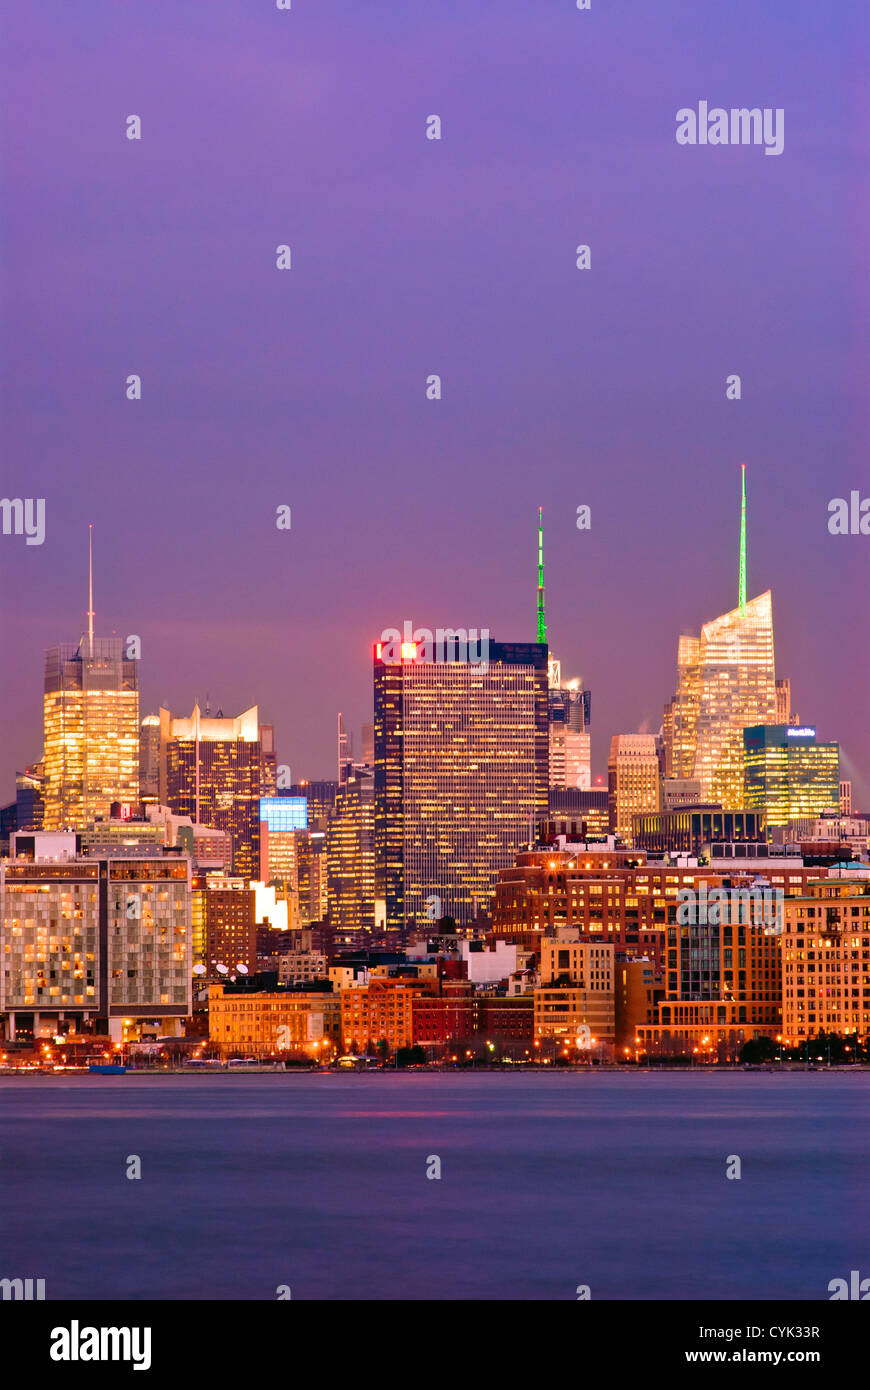 Midtown West Skyline, New York City, Manhattan, including the New York Times, One Penn Plaza and Bank of America - Stock Image